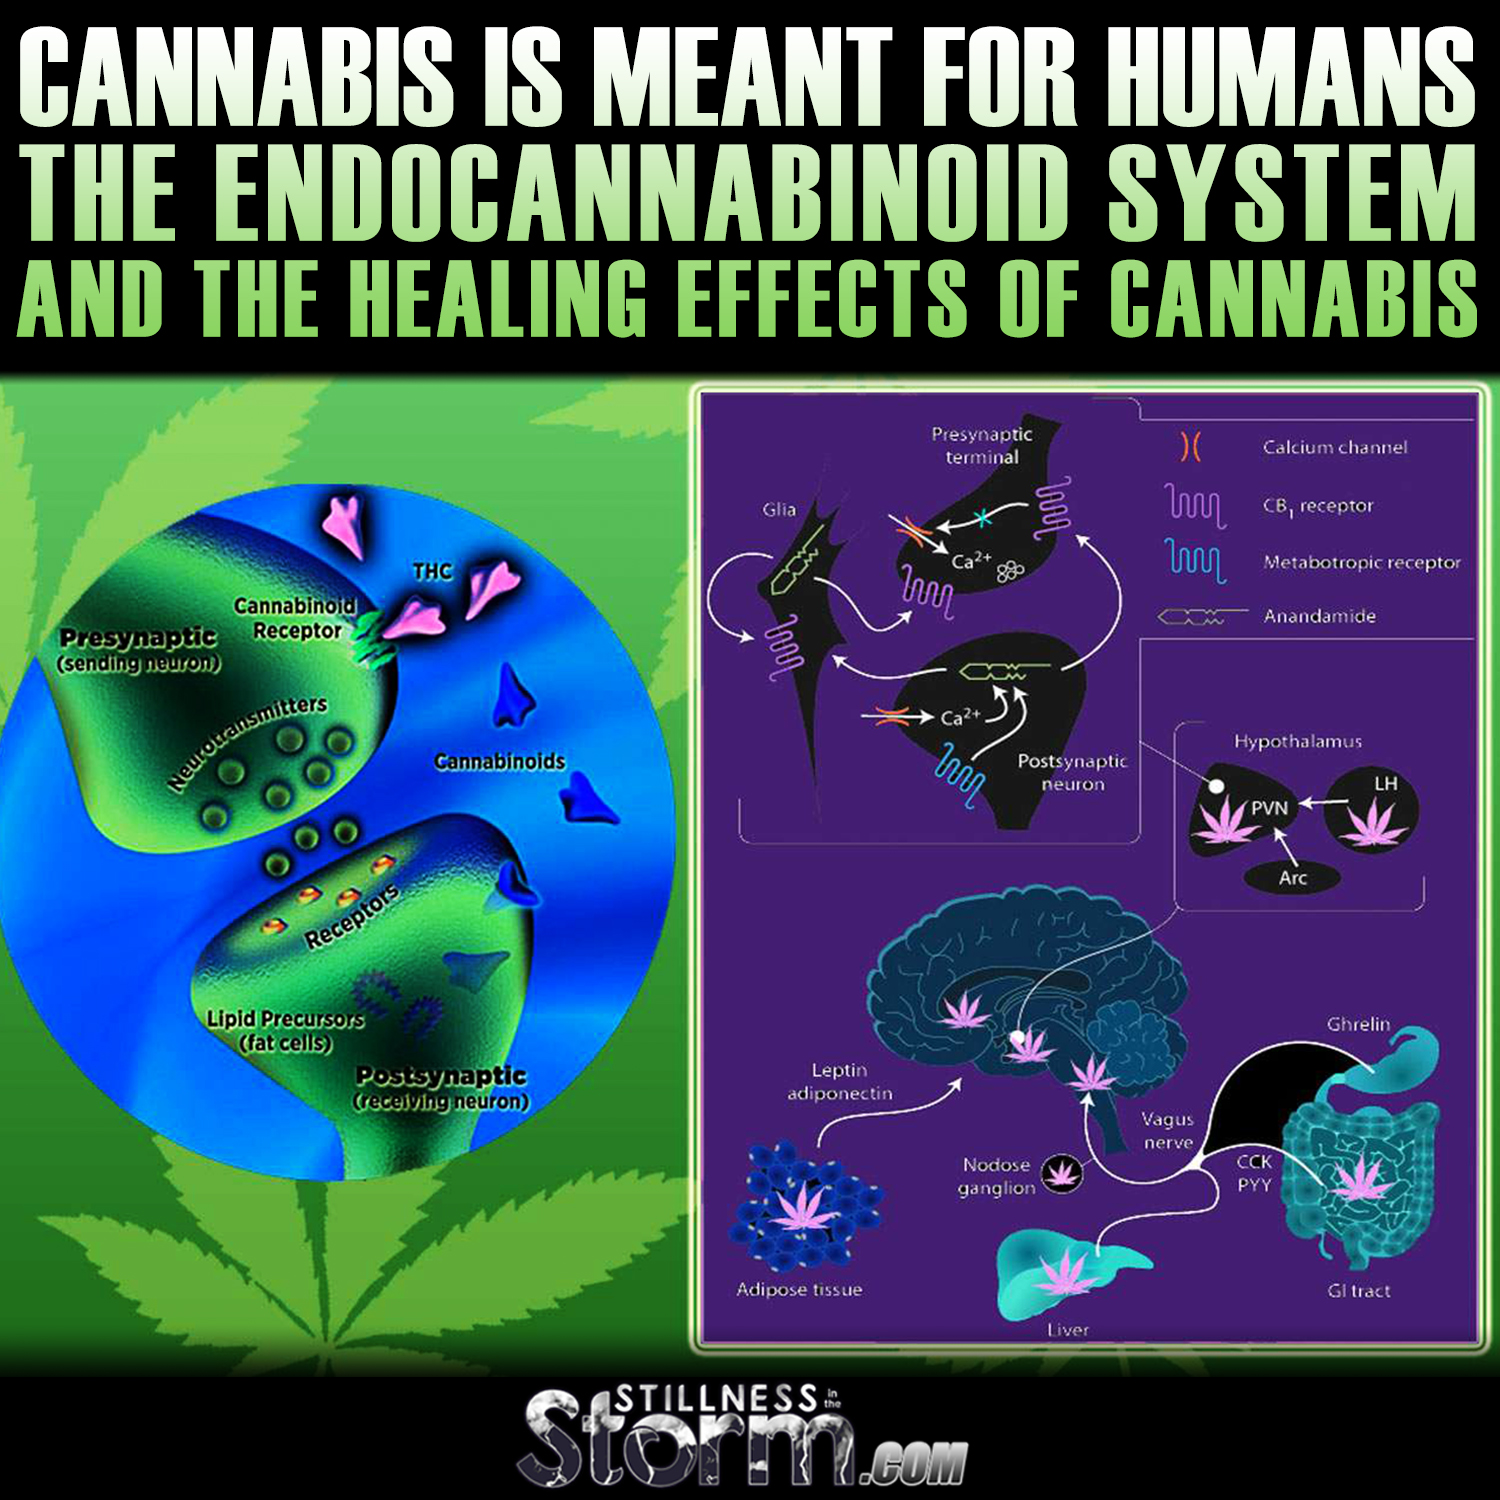 the health effects of marijuana on humans This report summarizes the current state of evidence regarding what is known about the health impacts of cannabis and cannabis-derived products, including effects related to therapeutic uses of cannabis and potential health risks related to certain cancers, diseases, mental health disorders, and injuries.